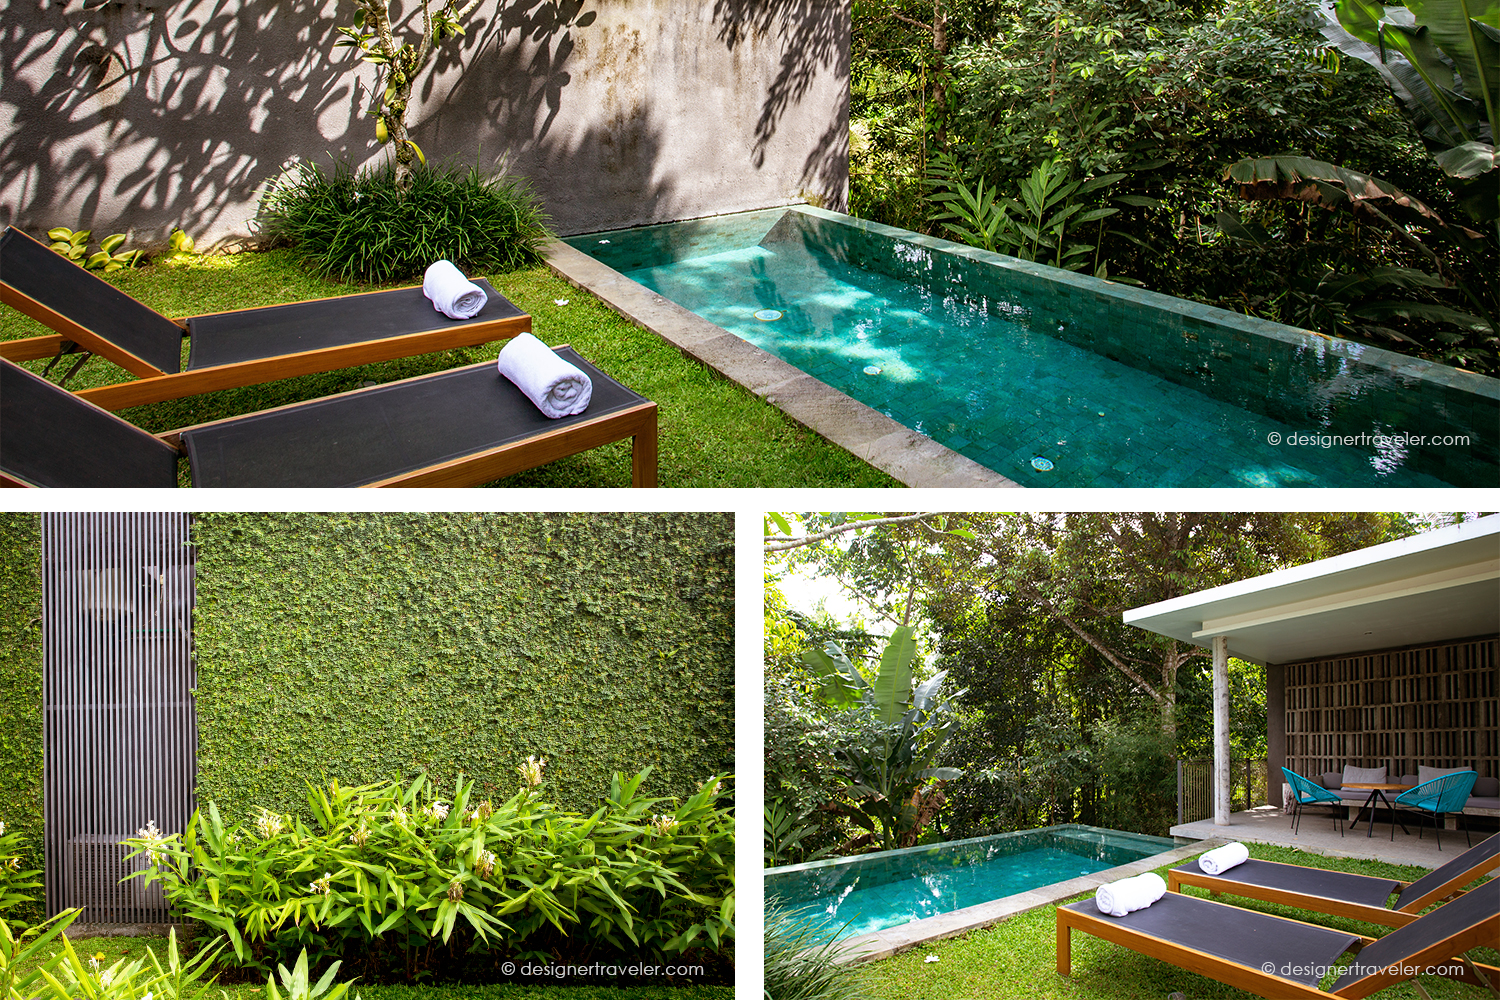 aria villas offer modern luxury in historically traditional ubud